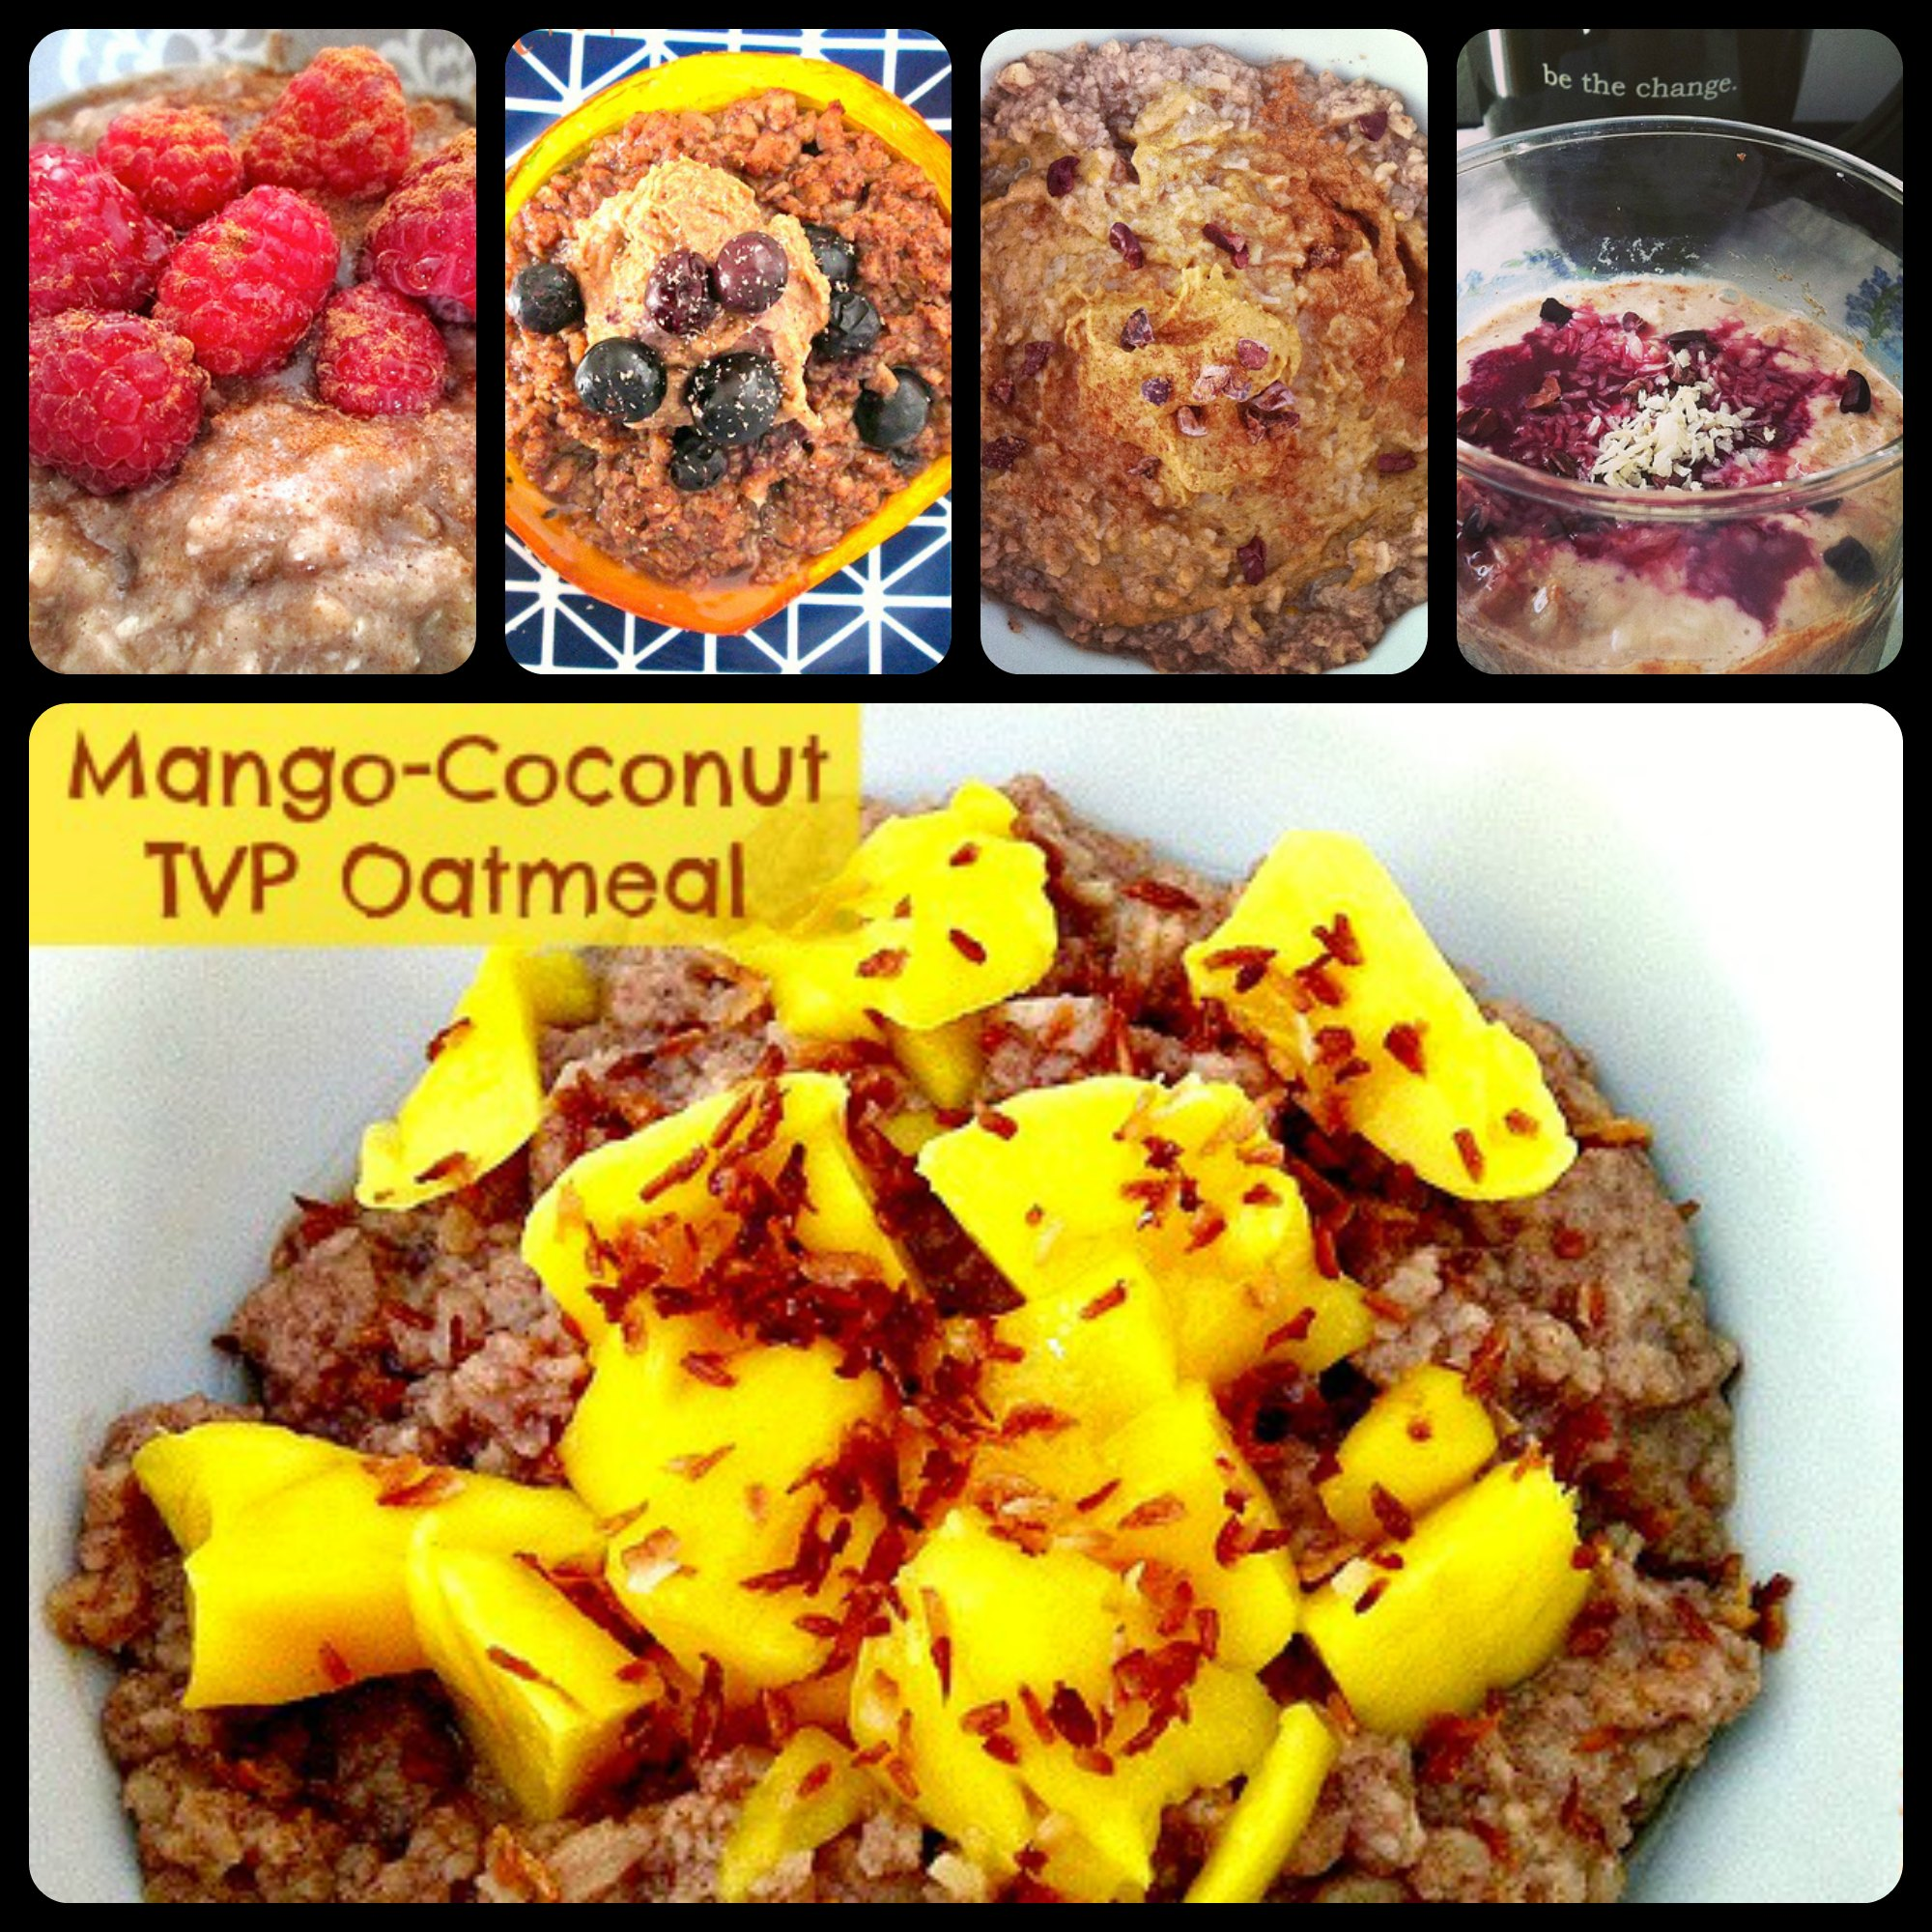 TVP Oatmeal Collage